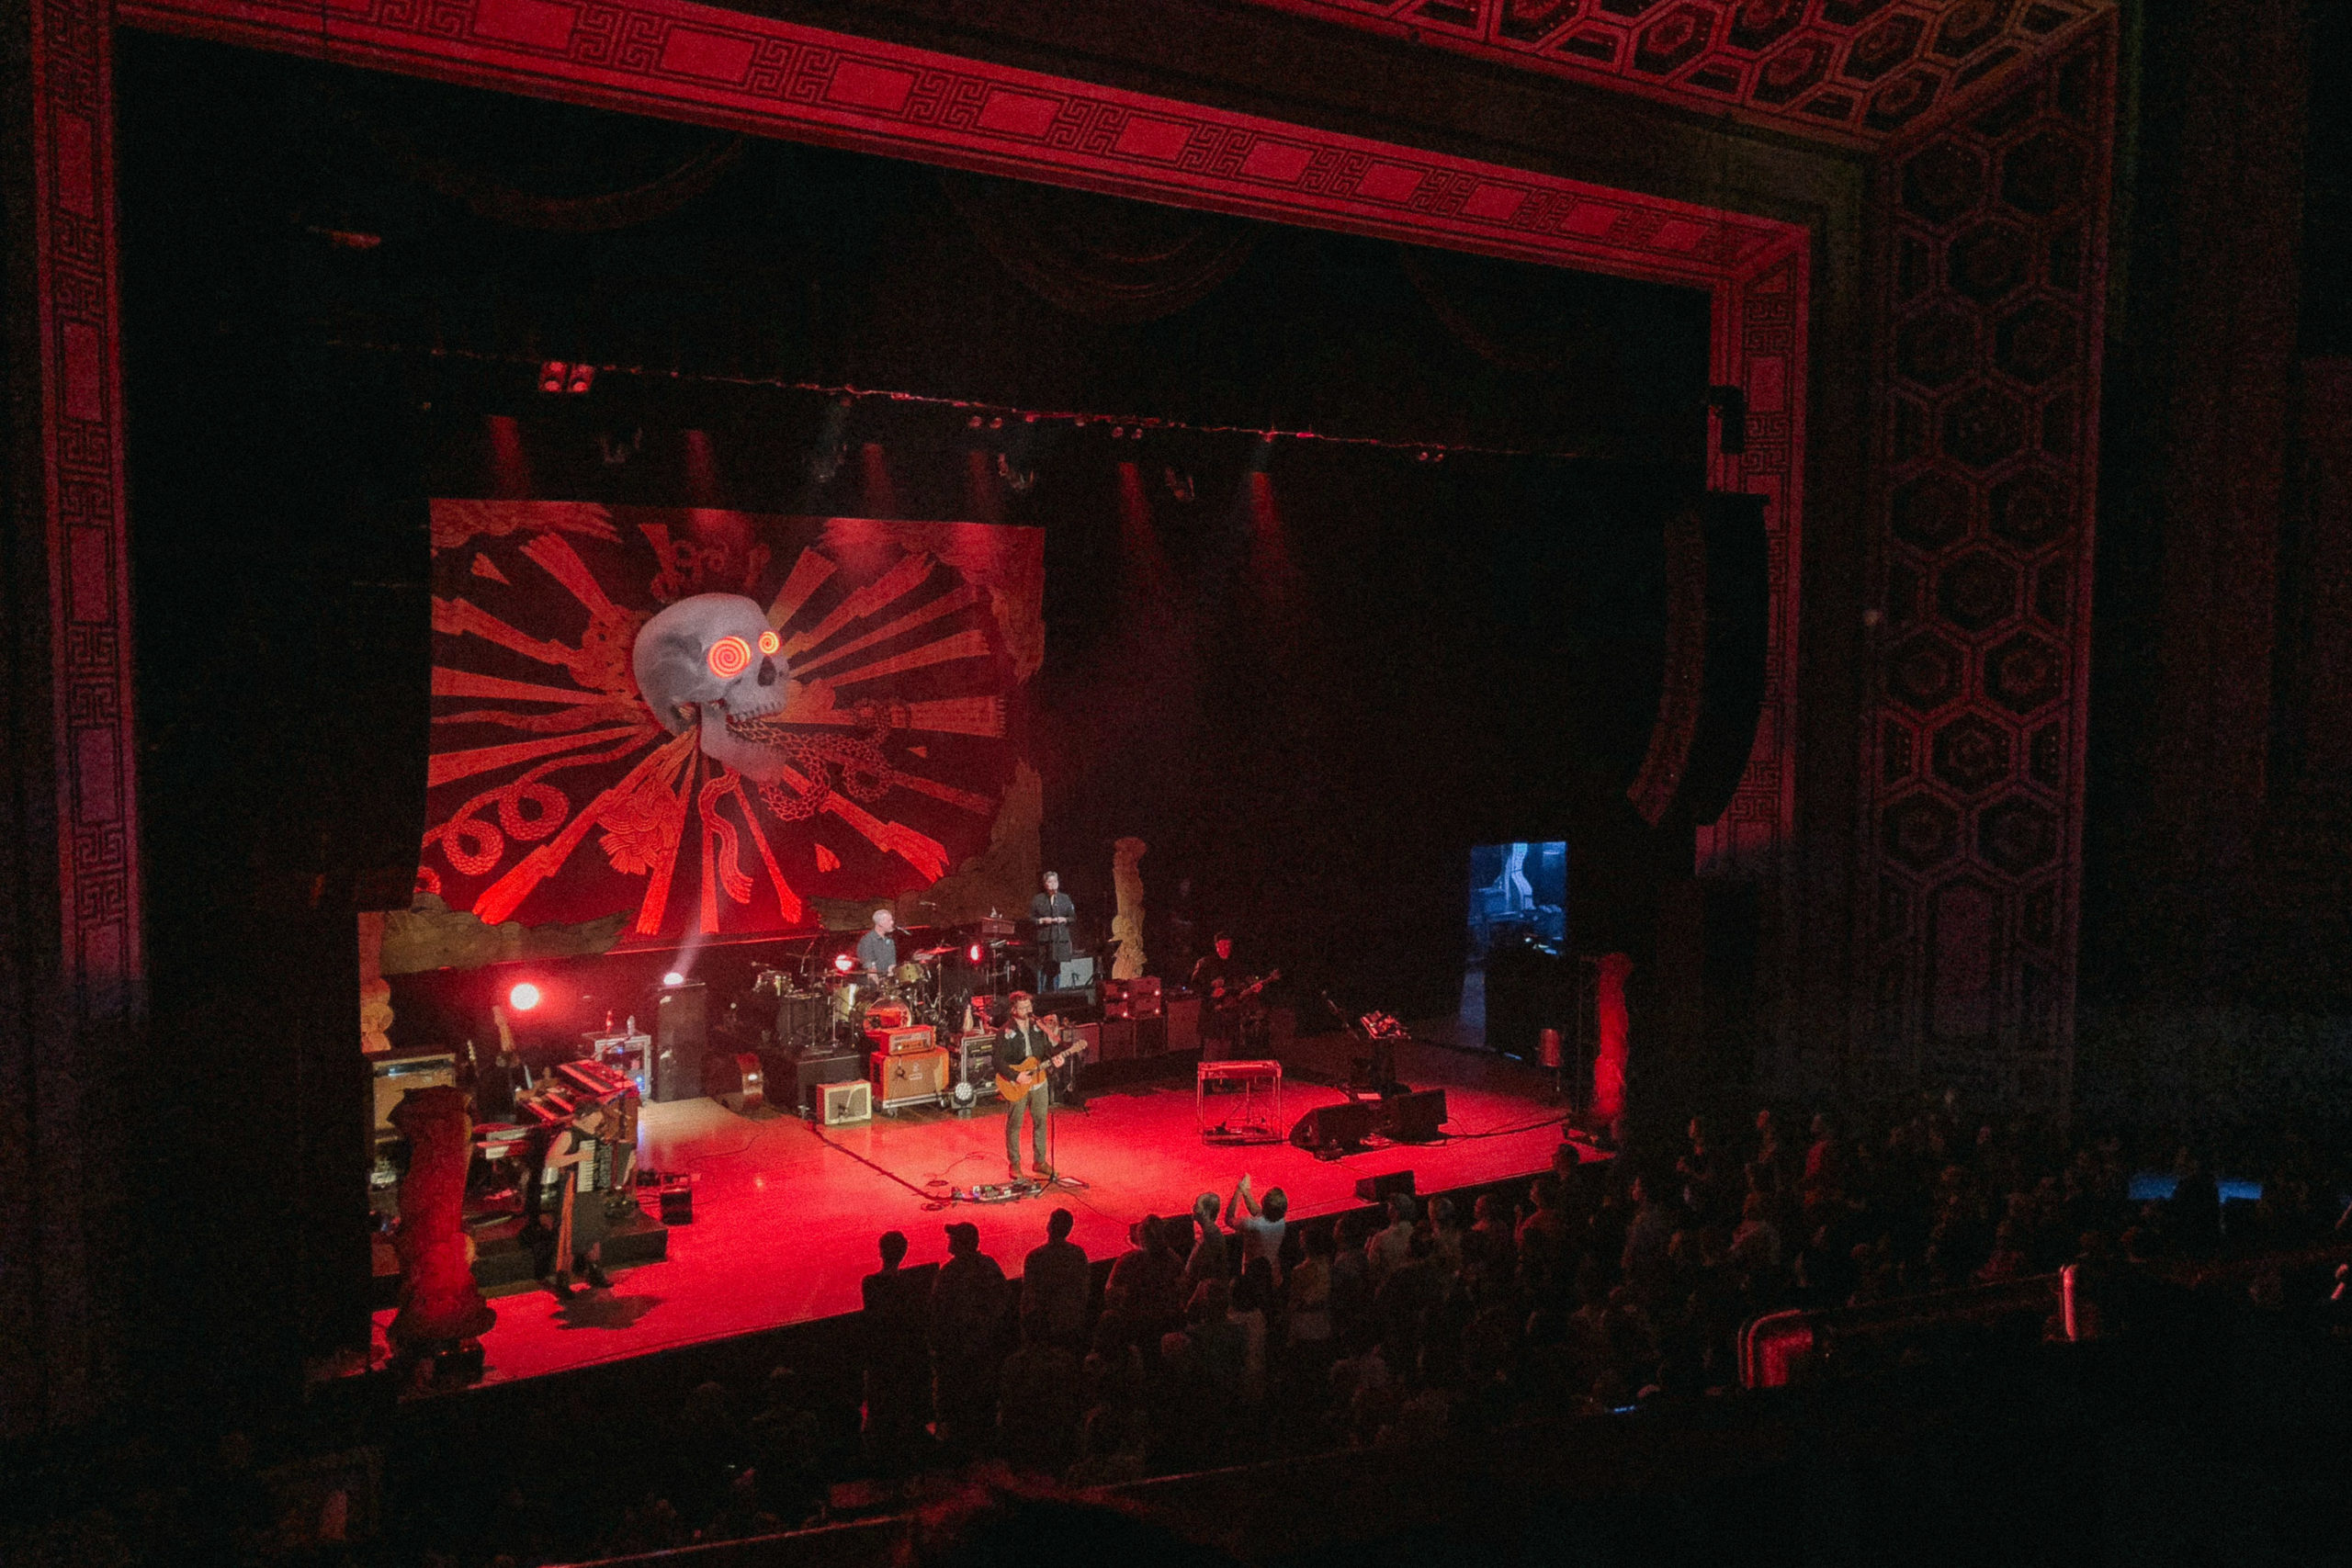 A band playing on stage bathed in red light